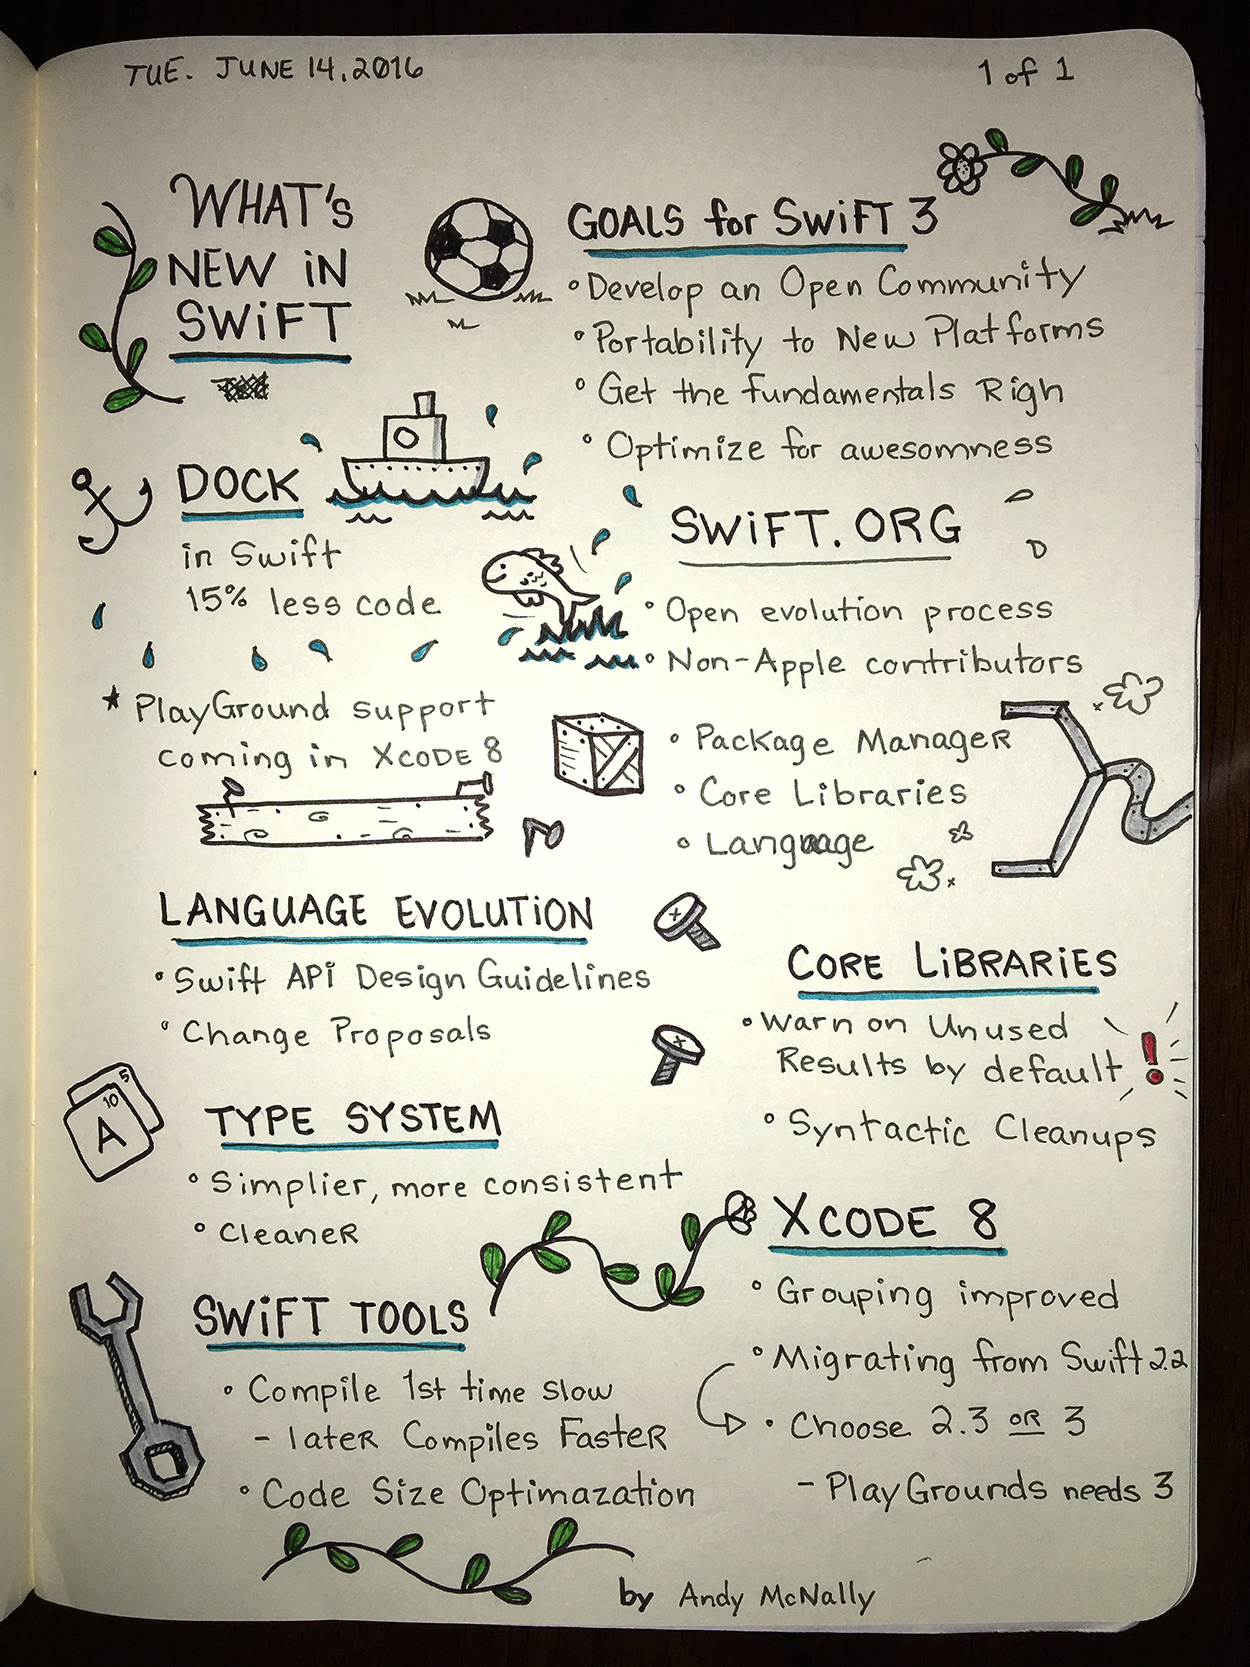 WWDC sketchnotes - What's New in Swift